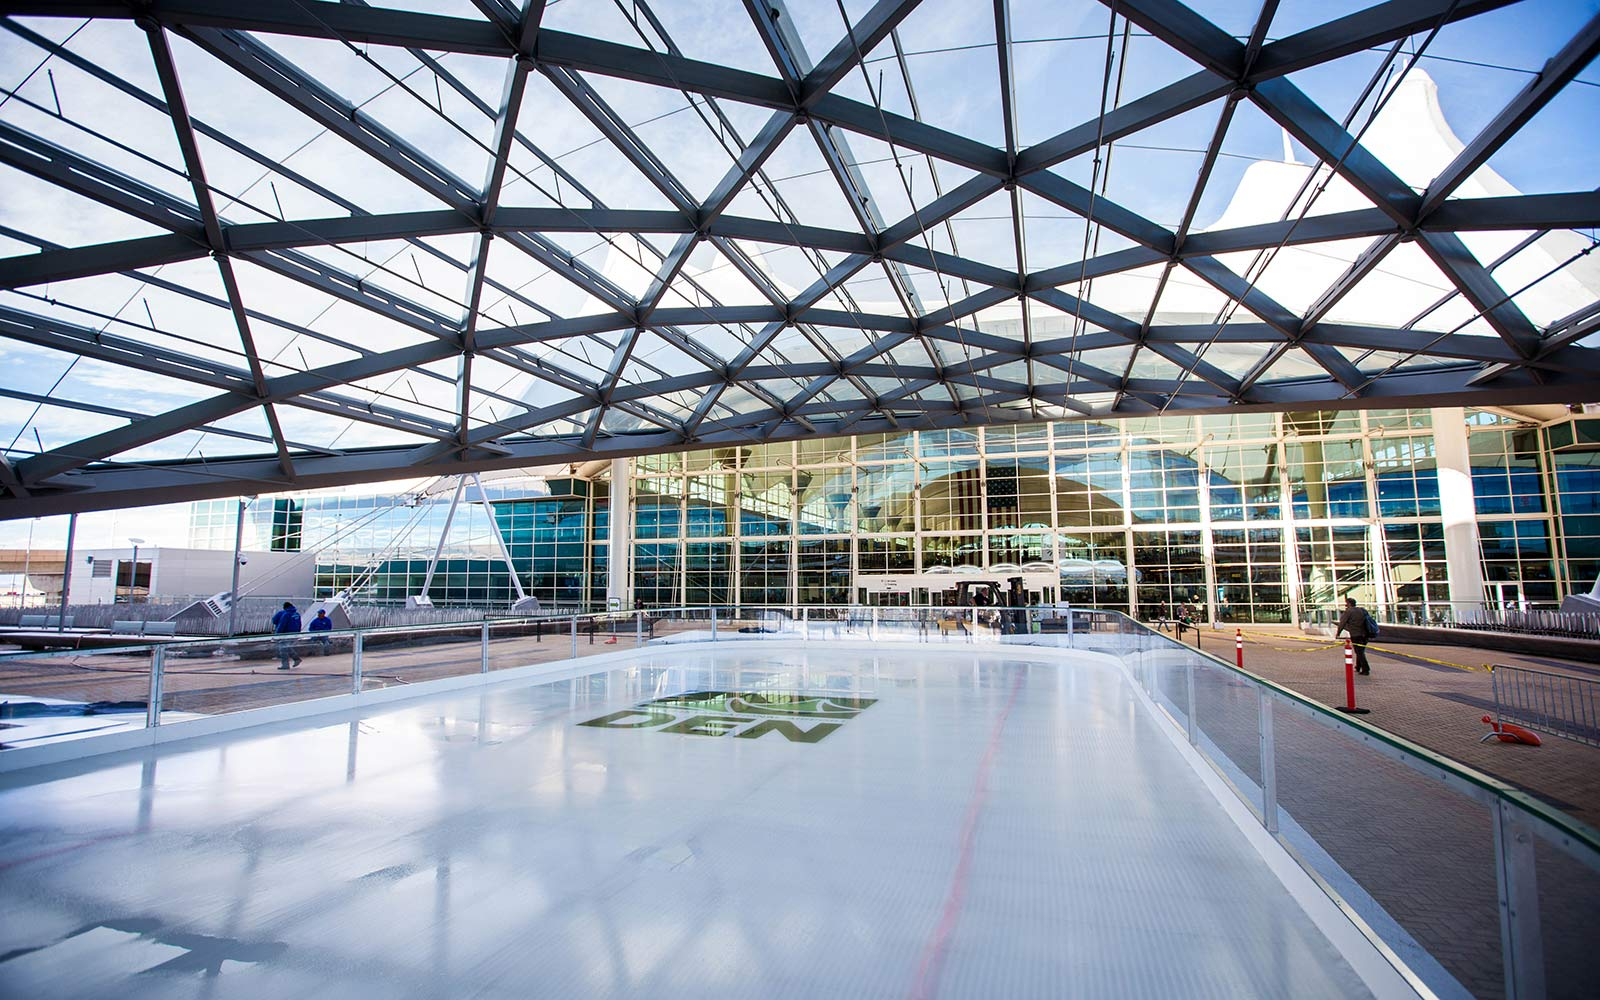 Denver Airport's Ice Rink